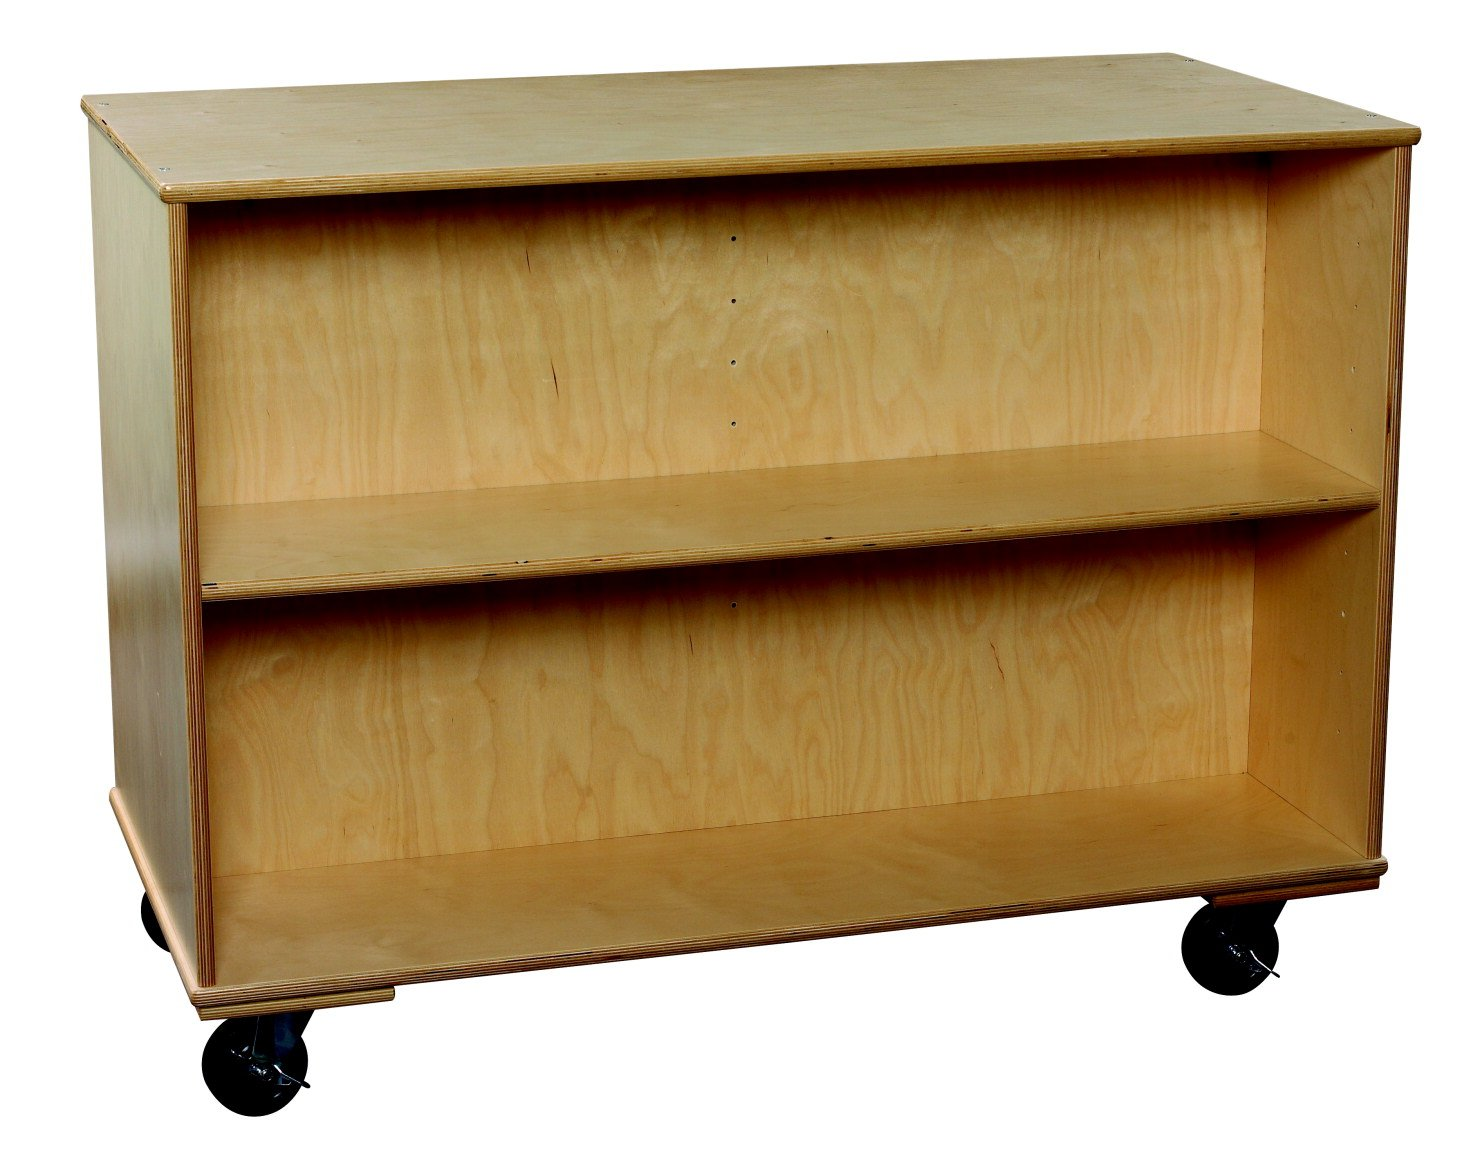 Classroom Select 1467858 Mobile Double-Sided Book Case with Adjustable Shelf, Birch veneer, 36'', Natural Wood Tone